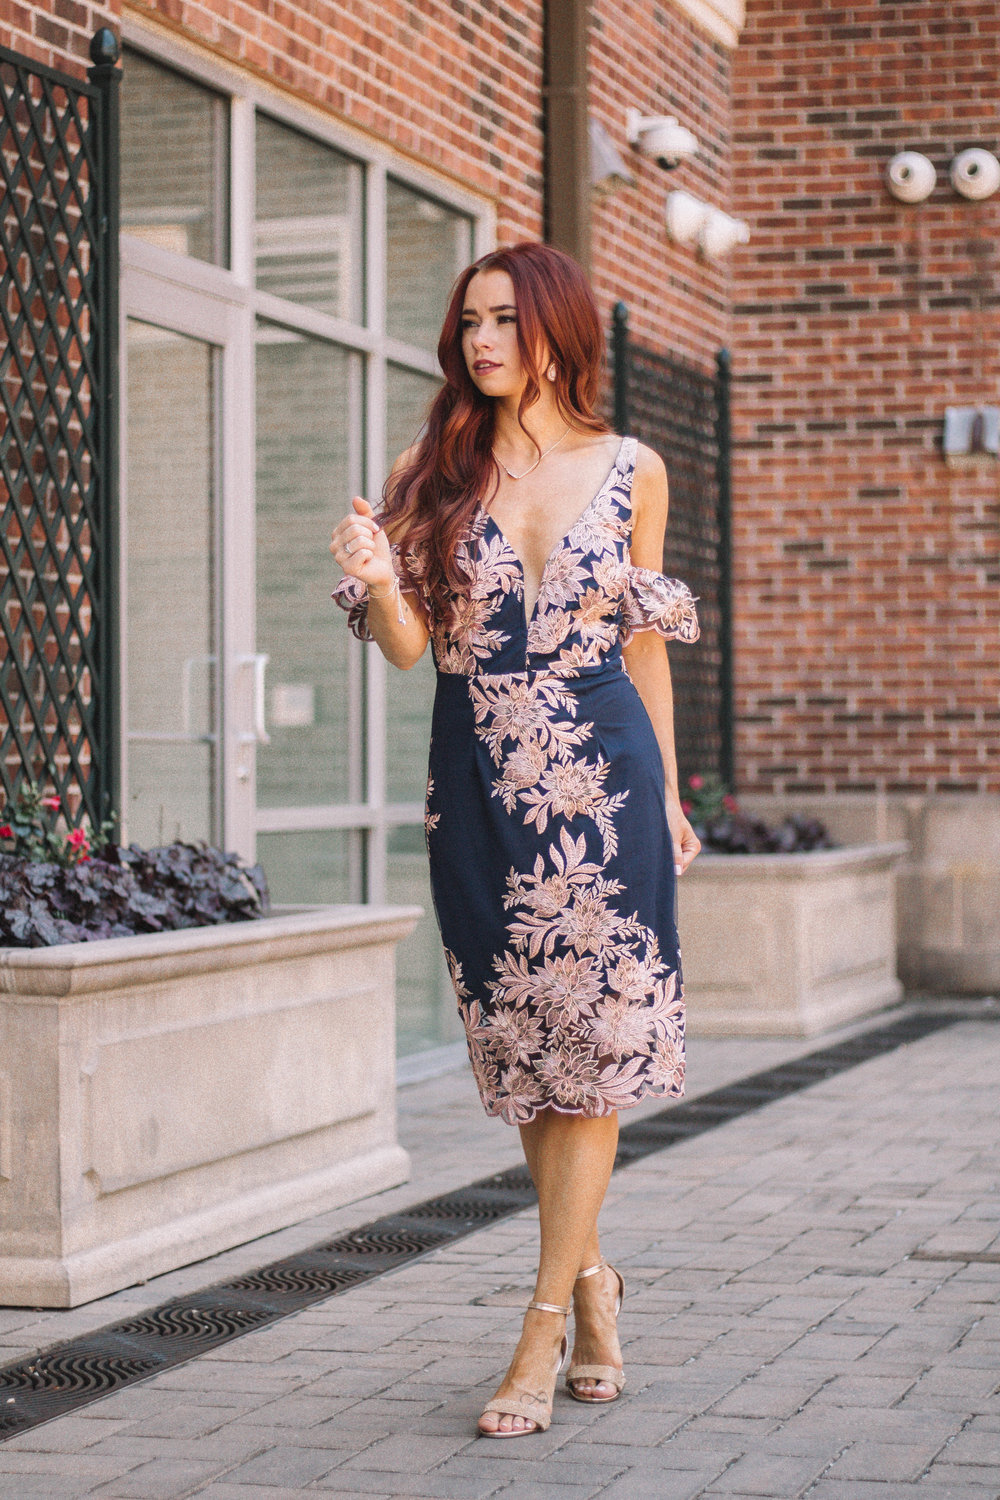 bc1d80454ffd7 Cute Summer Wedding Guest Dresses with Ella Mae's featured by popular  Indianapolis fashion blogger, Trendy